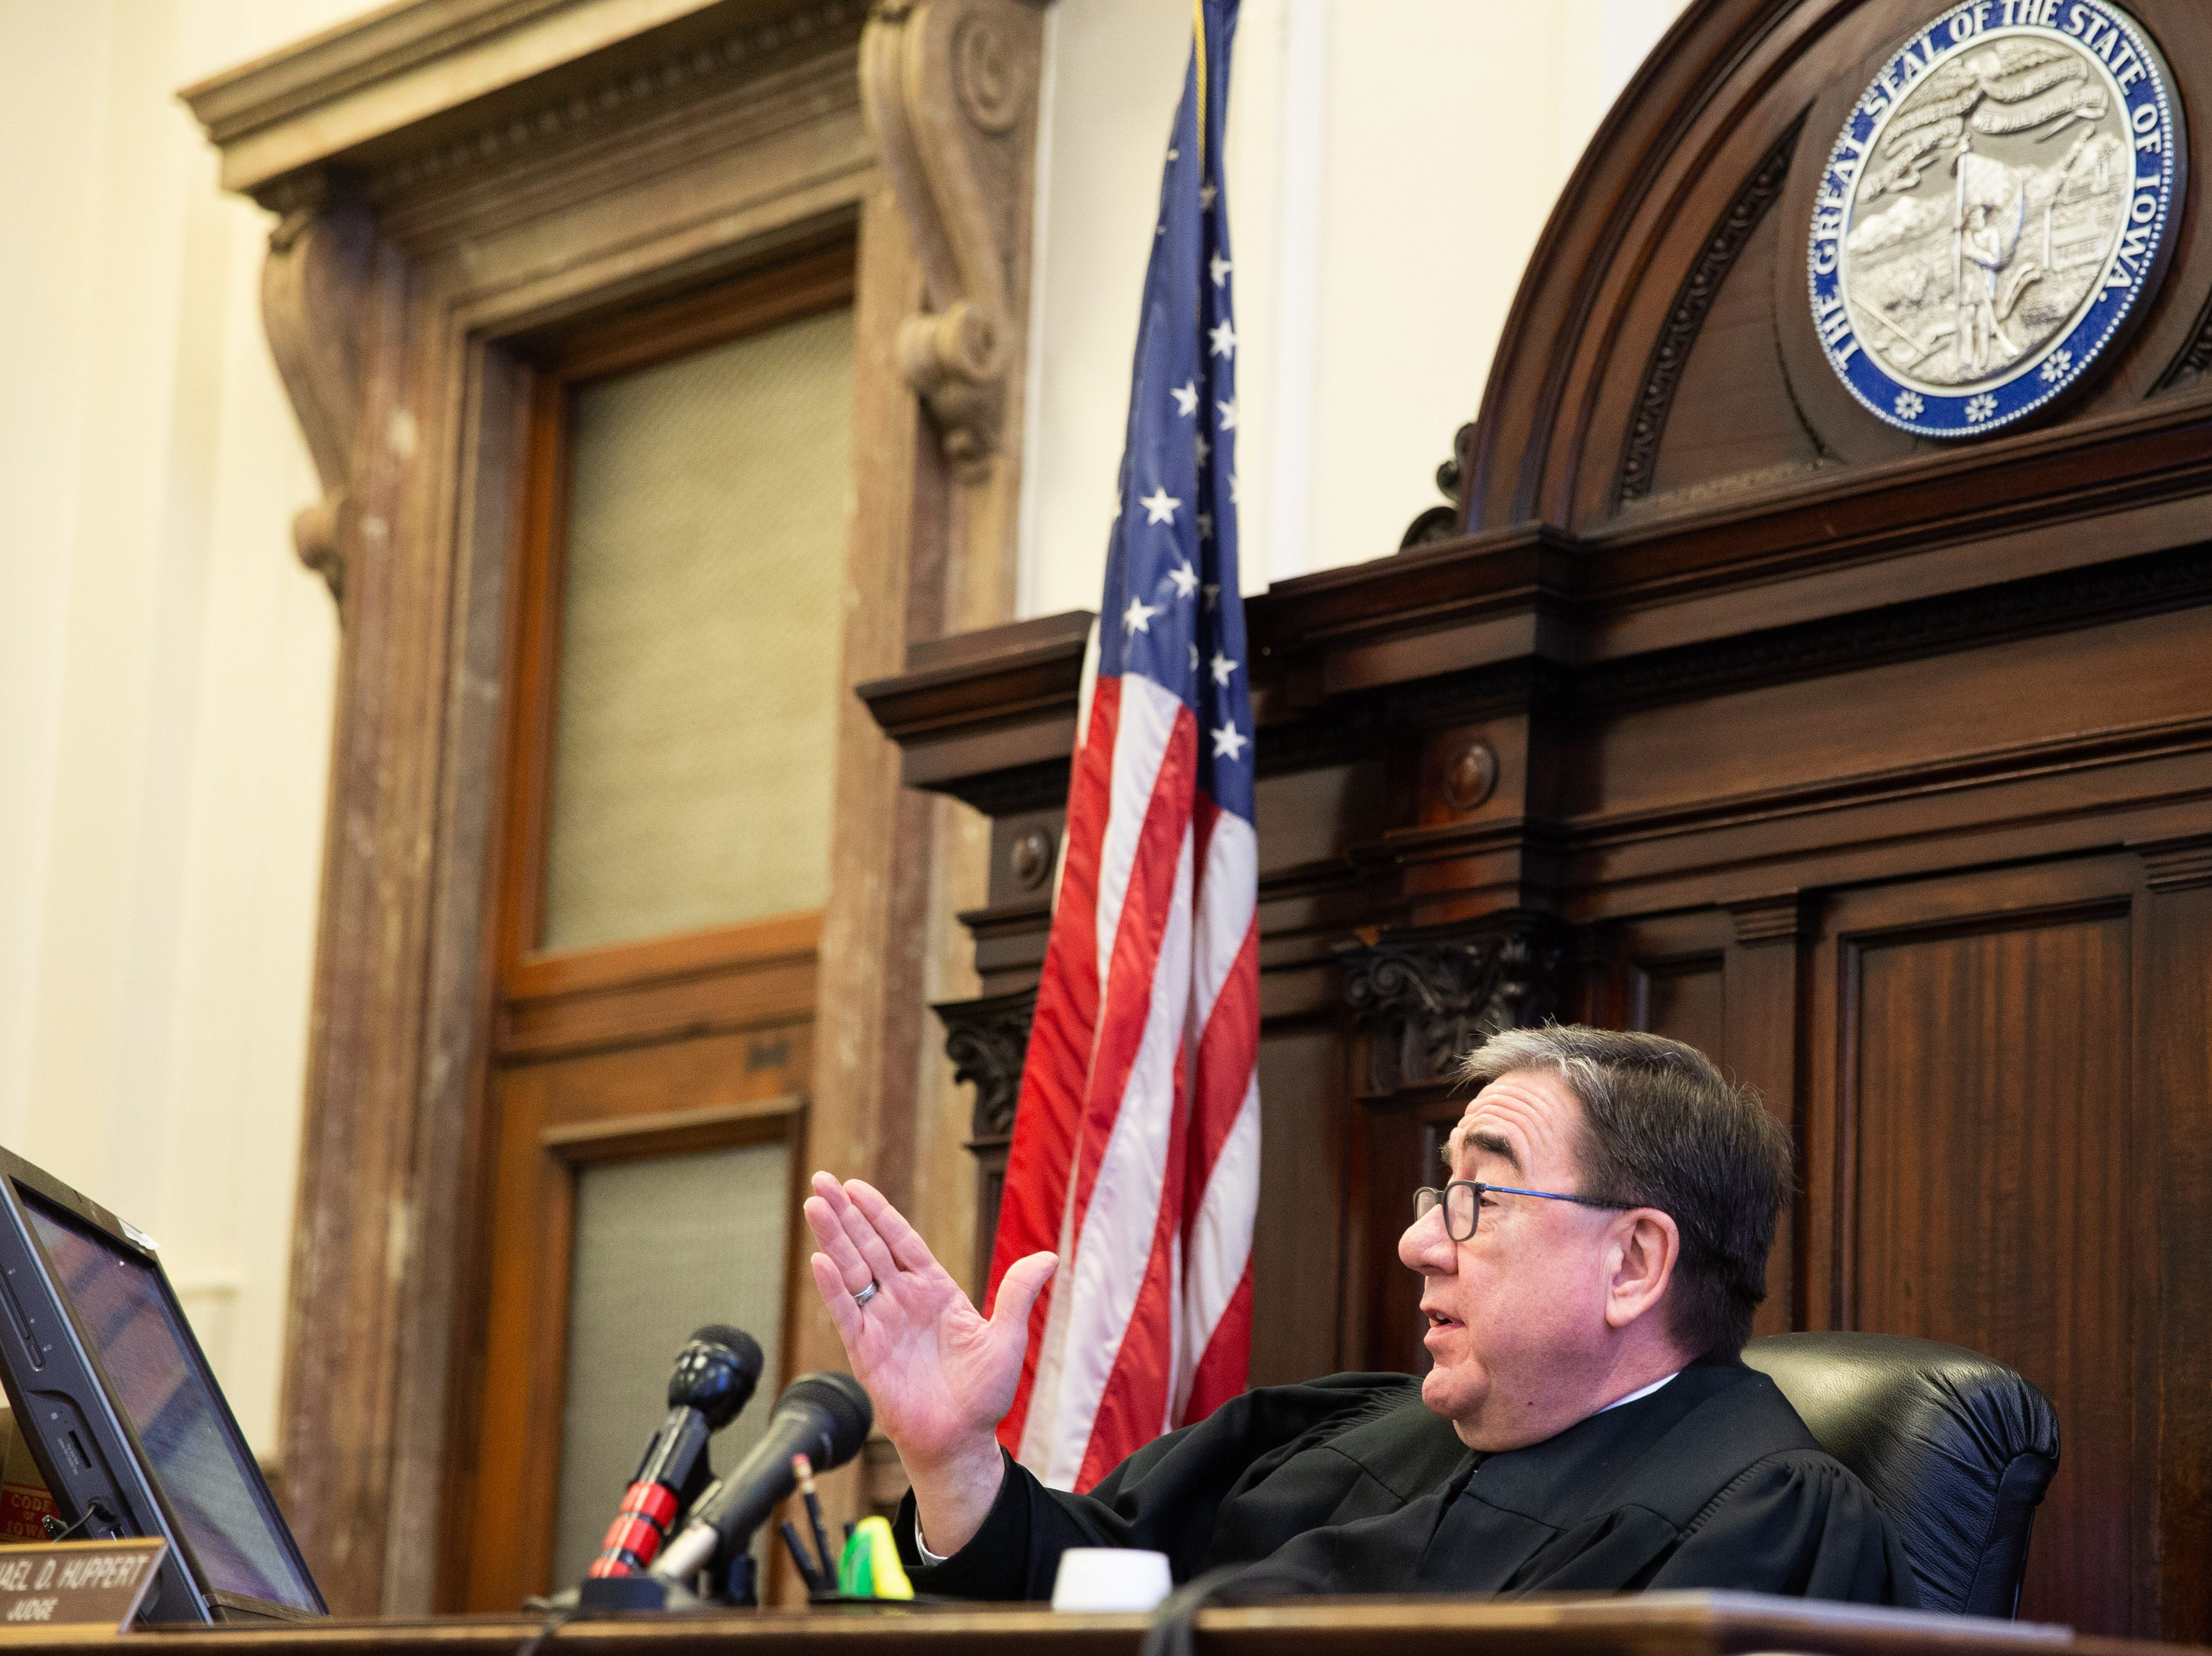 Polk County Judge Michael Huppert presides over a legal challenge to Iowa's fetal heartbeat law in state court Friday, Dec. 7, 2018.